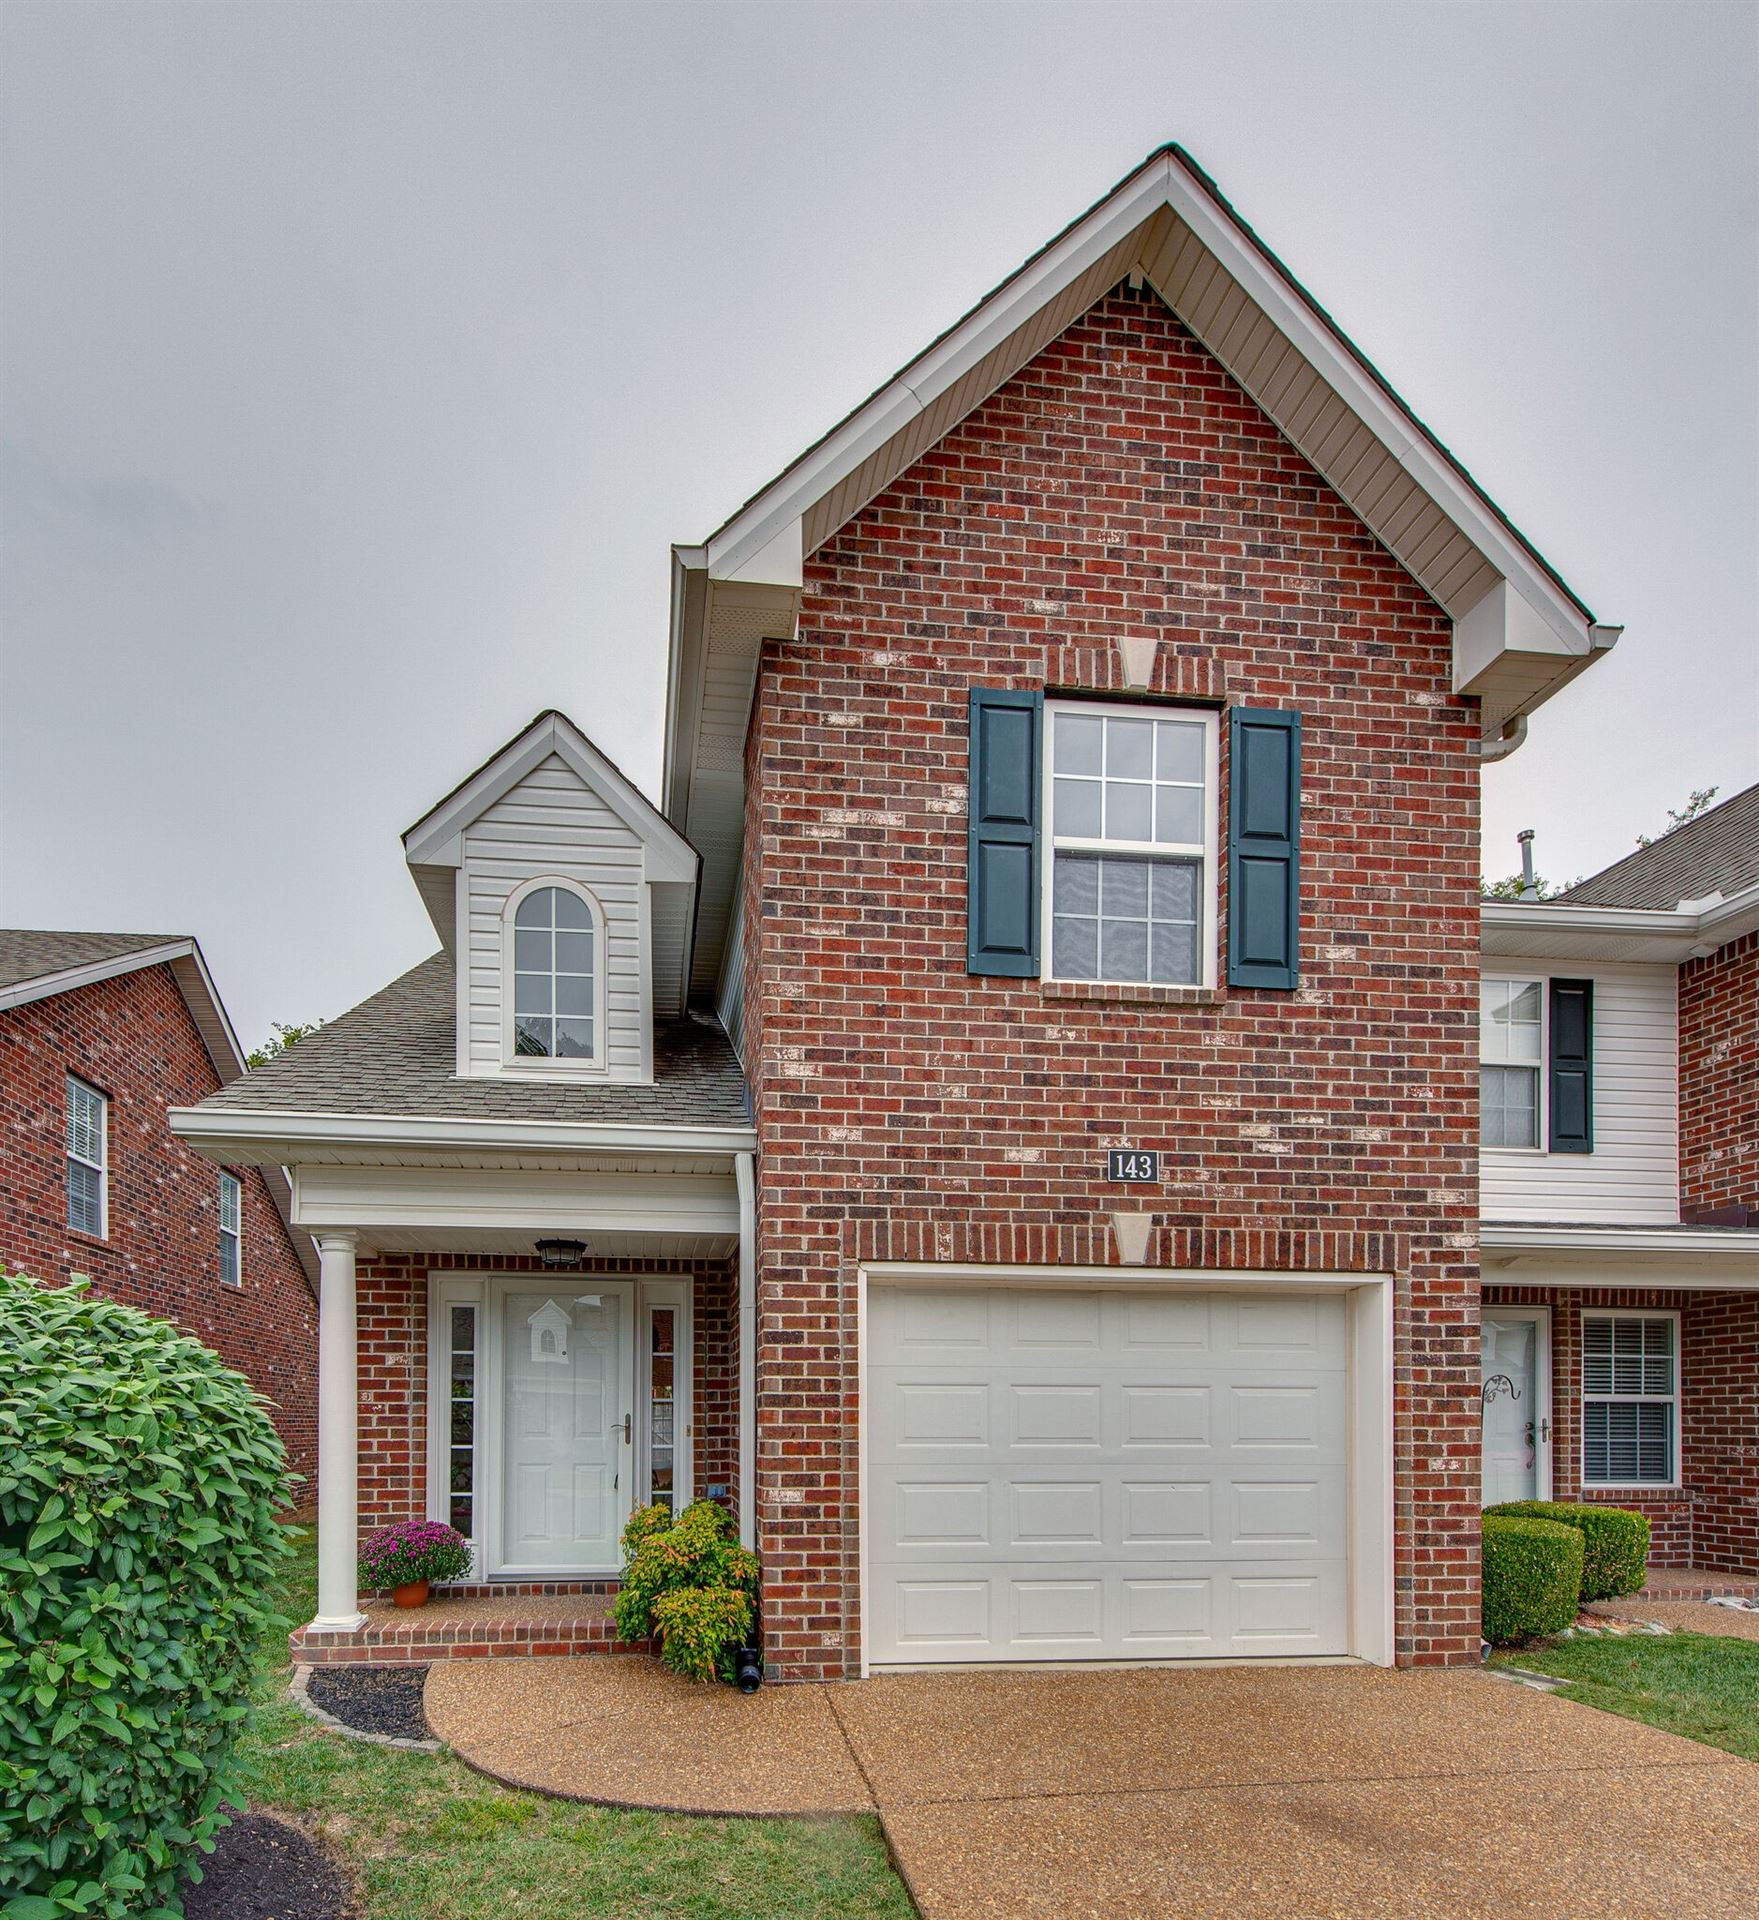 143 Noel Cove Cir, Hermitage, TN 37076 - MLS#: 2192573